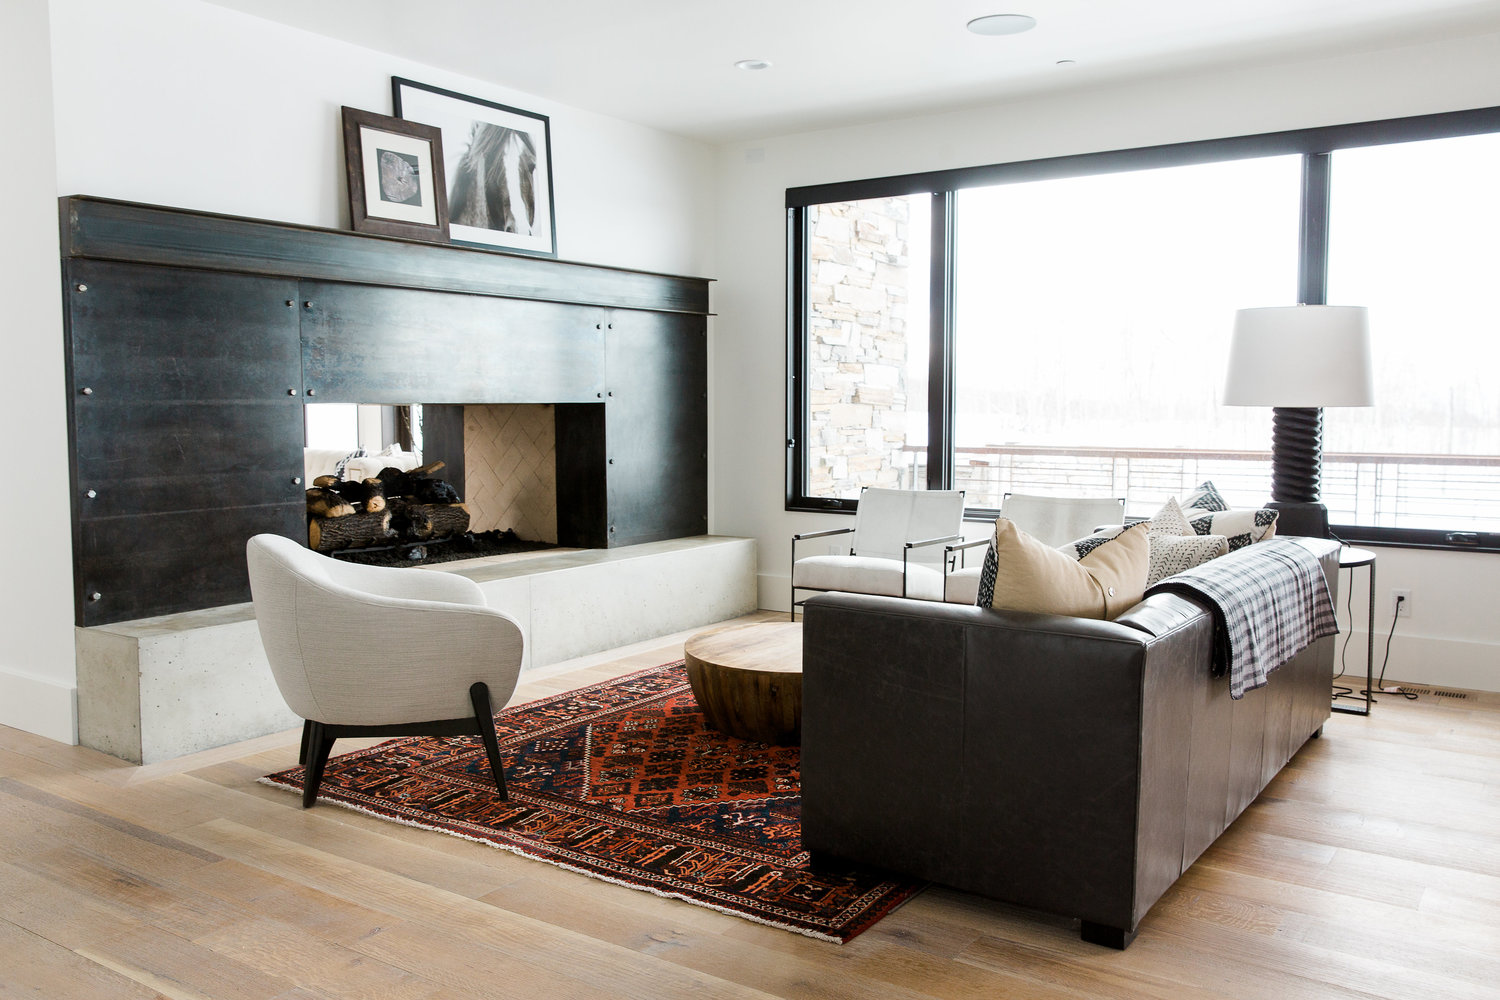 White sofa and brown couch in living room